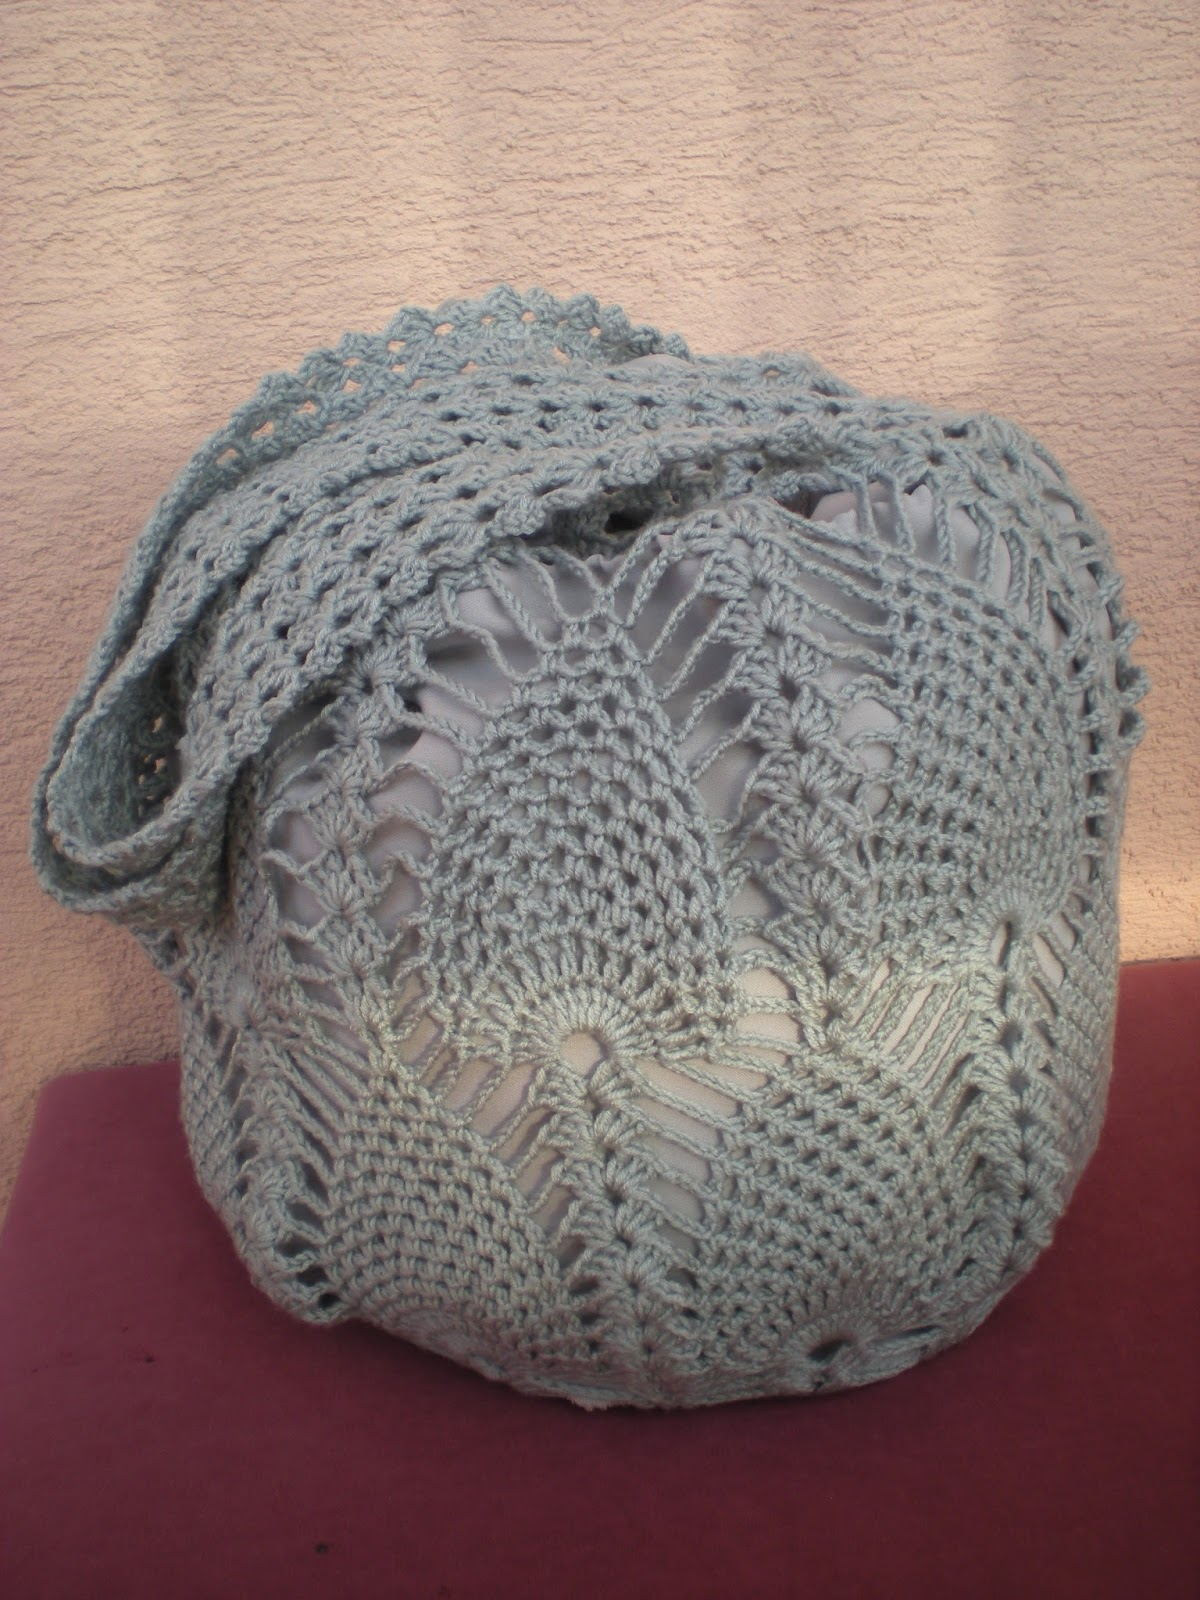 Pineapple Crochet Bag Pattern : know that my patterns are usually for free, but on this one due to ...